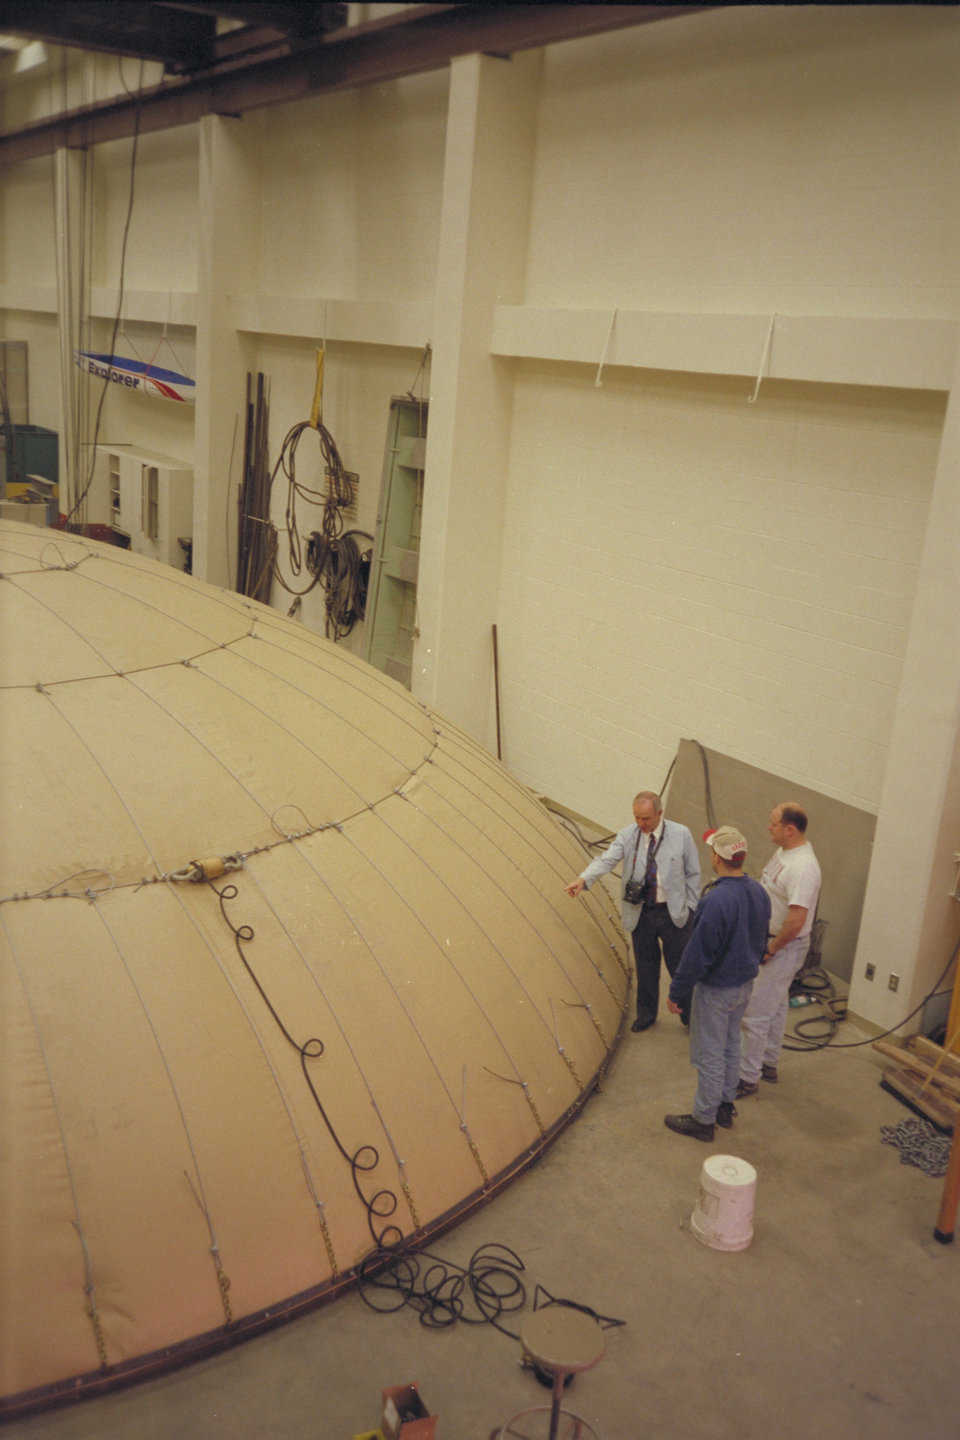 Dr. Wilson and two students examine the Crenosphere test model. A Monolithic Dome built without cables may be built to 296' in diameter. This test showed that a cable restrained dome may achieve domes up to 1000' in diameter.